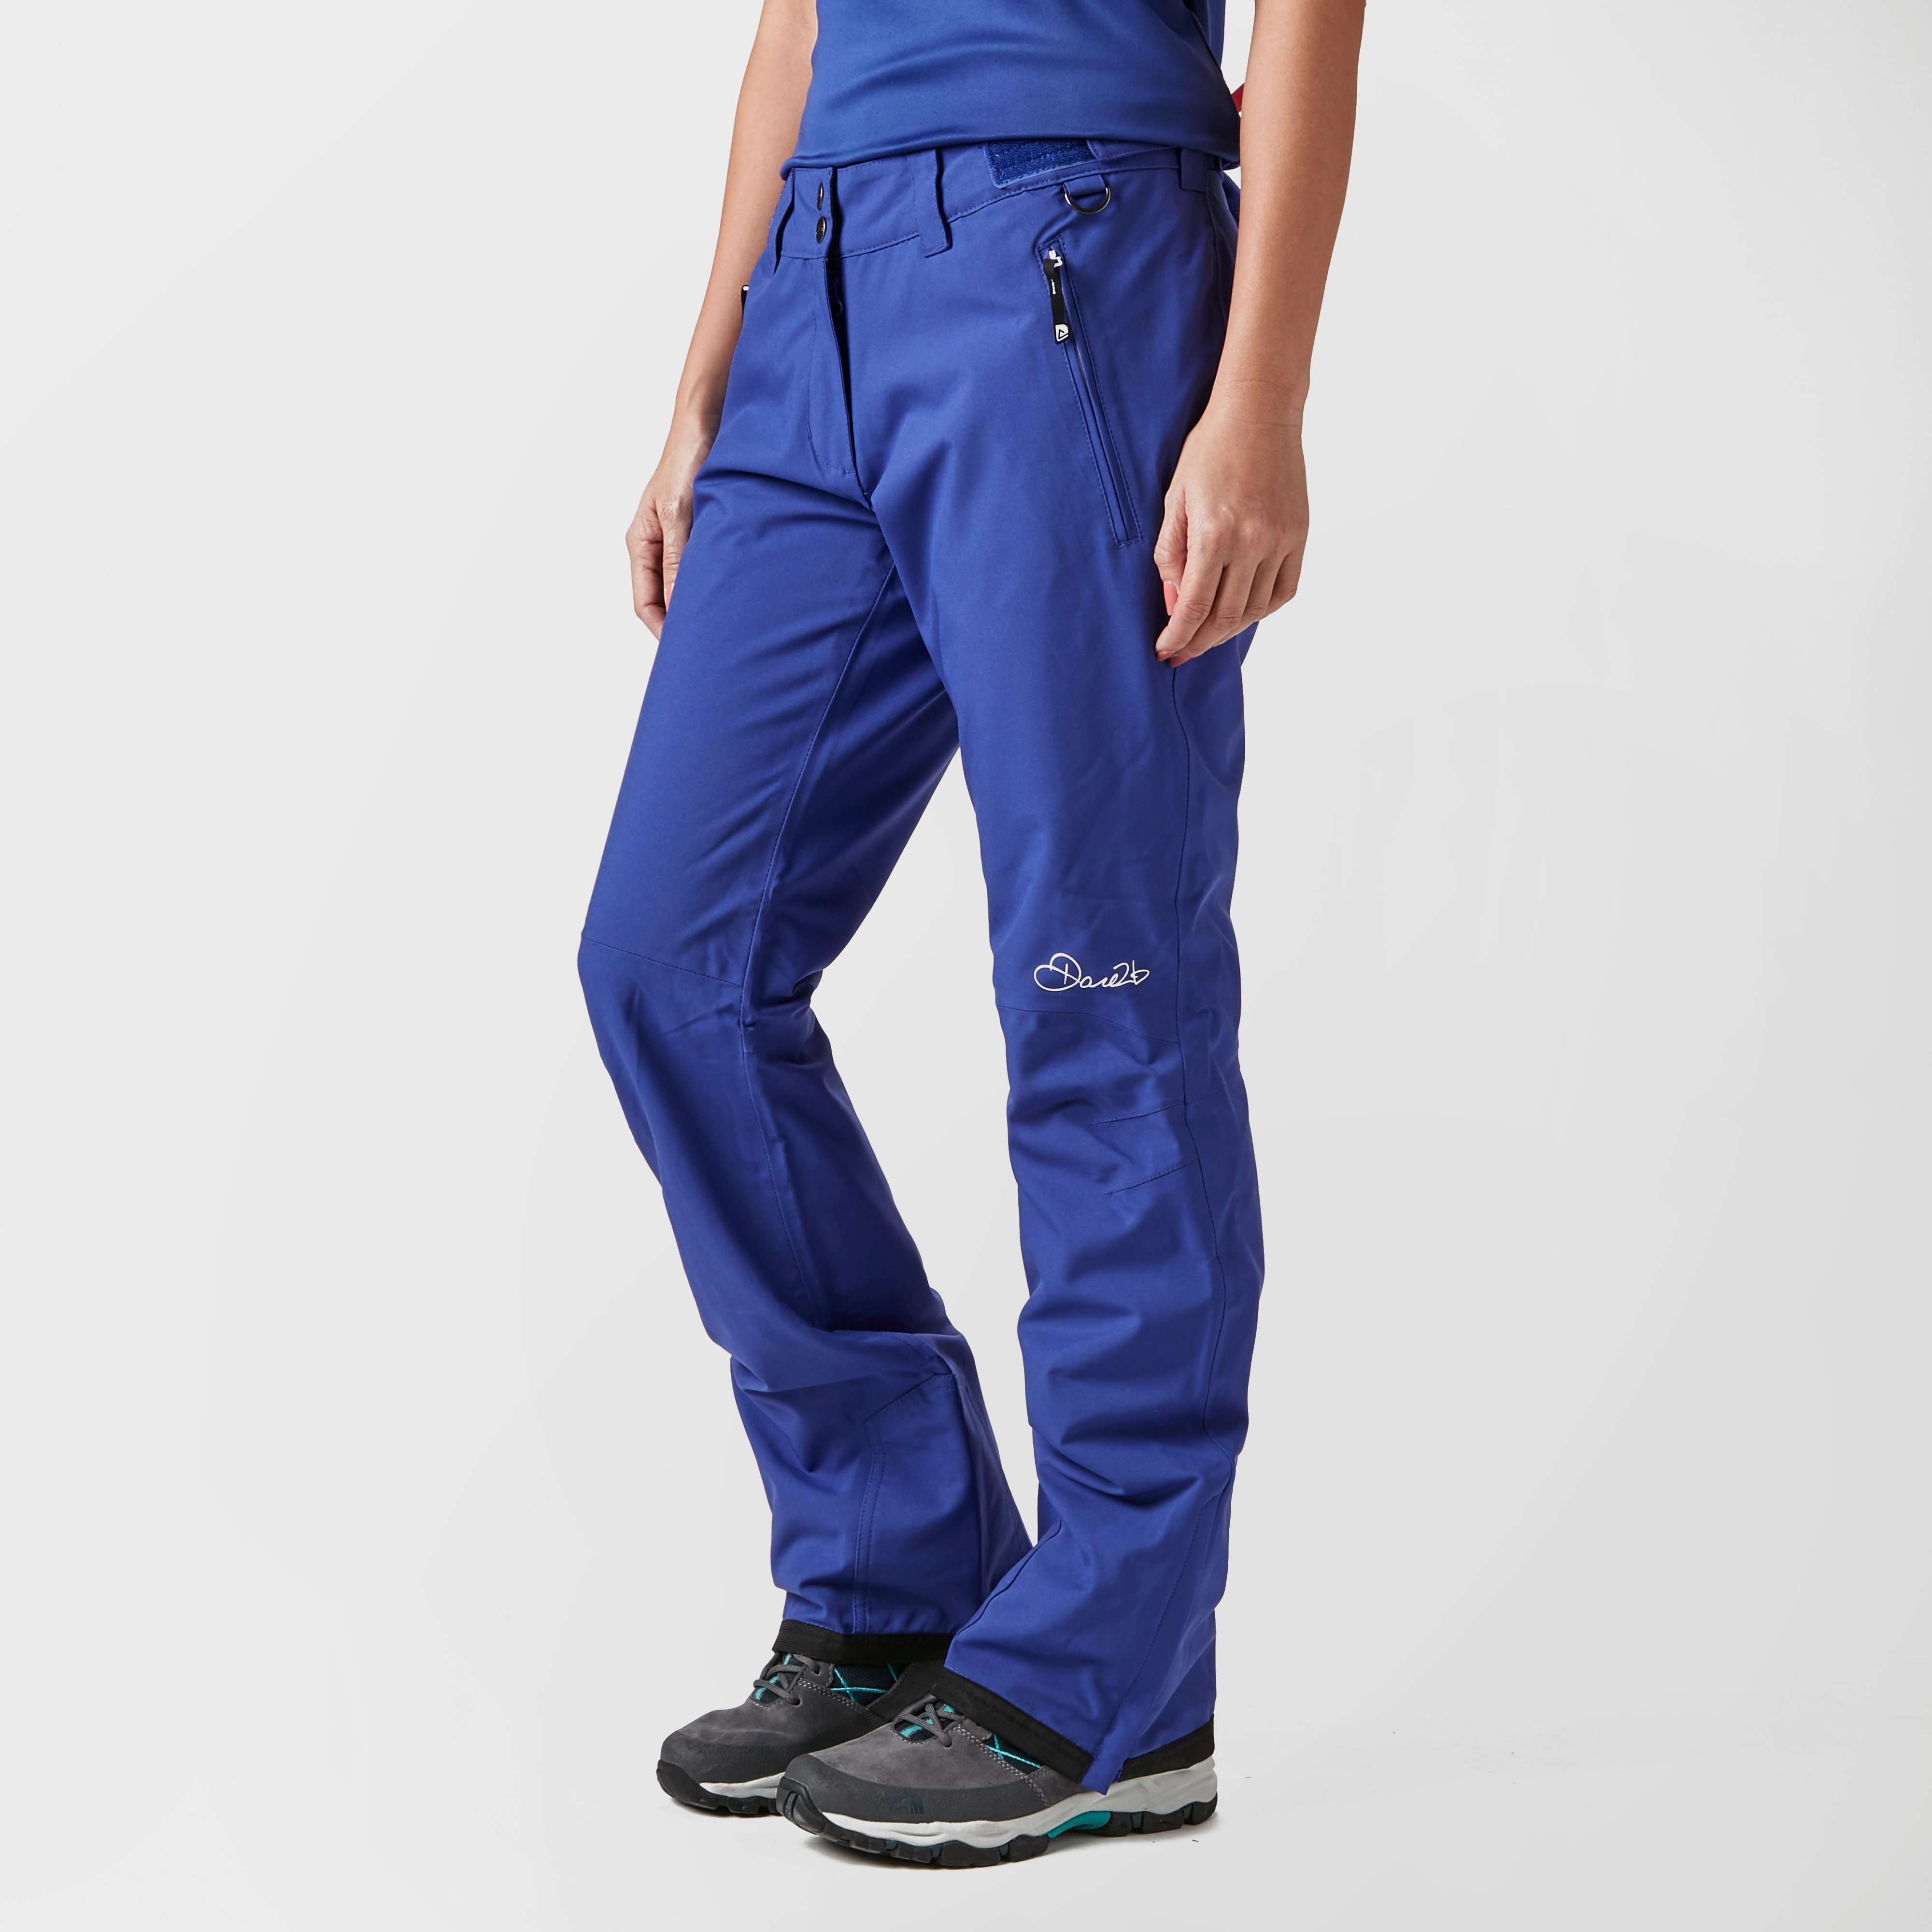 DARE 2B Women's Stand For Pant